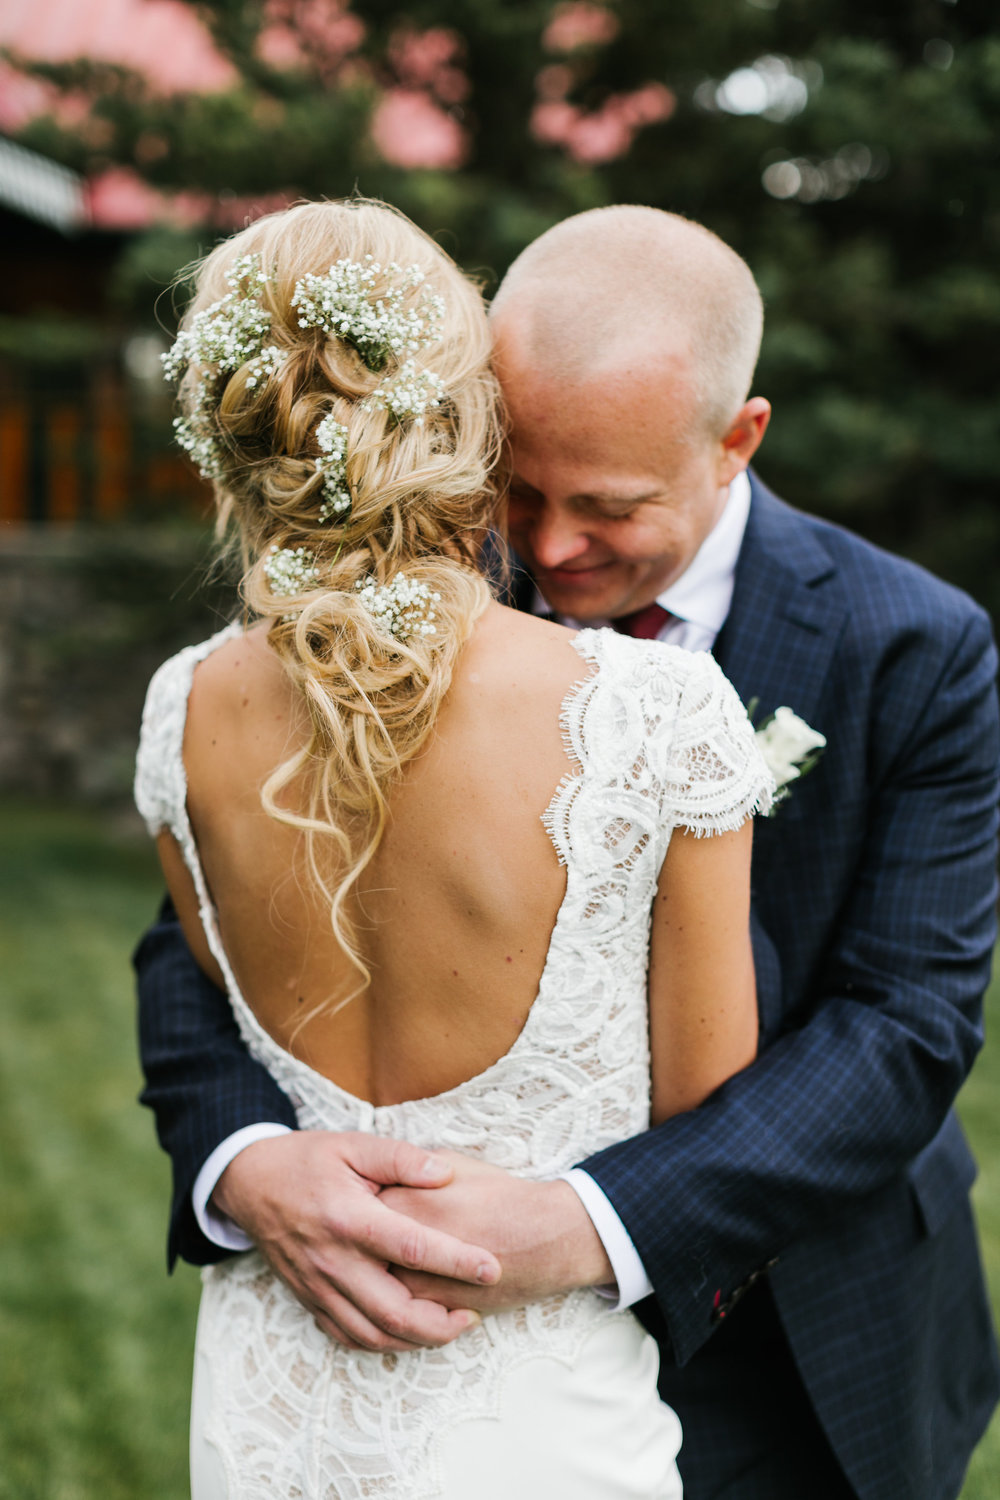 The Post Hotel Wedding | Lake Louise Wedding | Lake Louise Wedding Planner | Canmore Wedding Planner | Stacey Foley Design